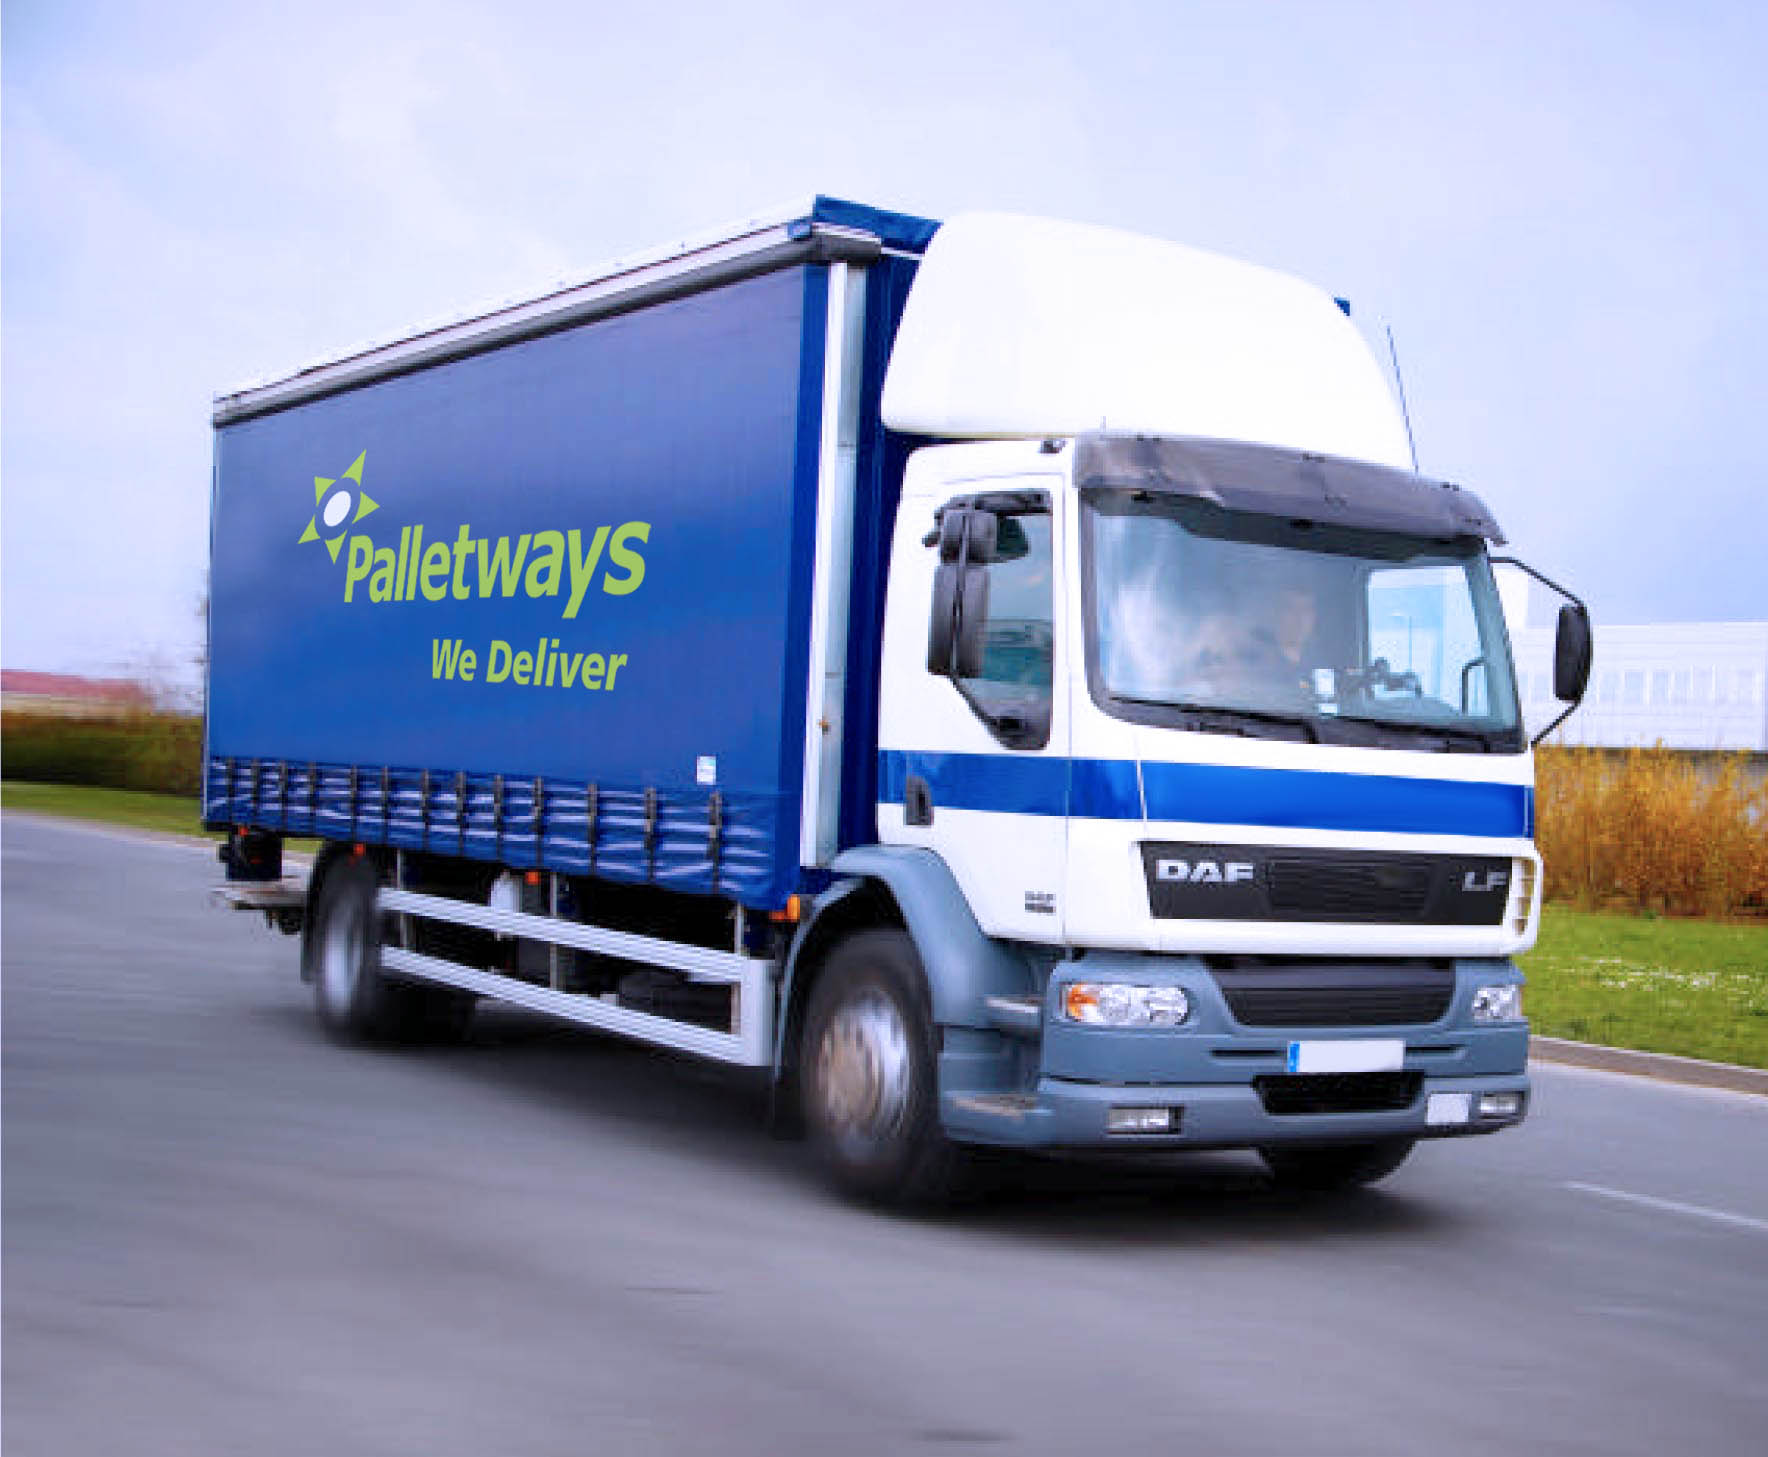 Palletways lorry in countryside